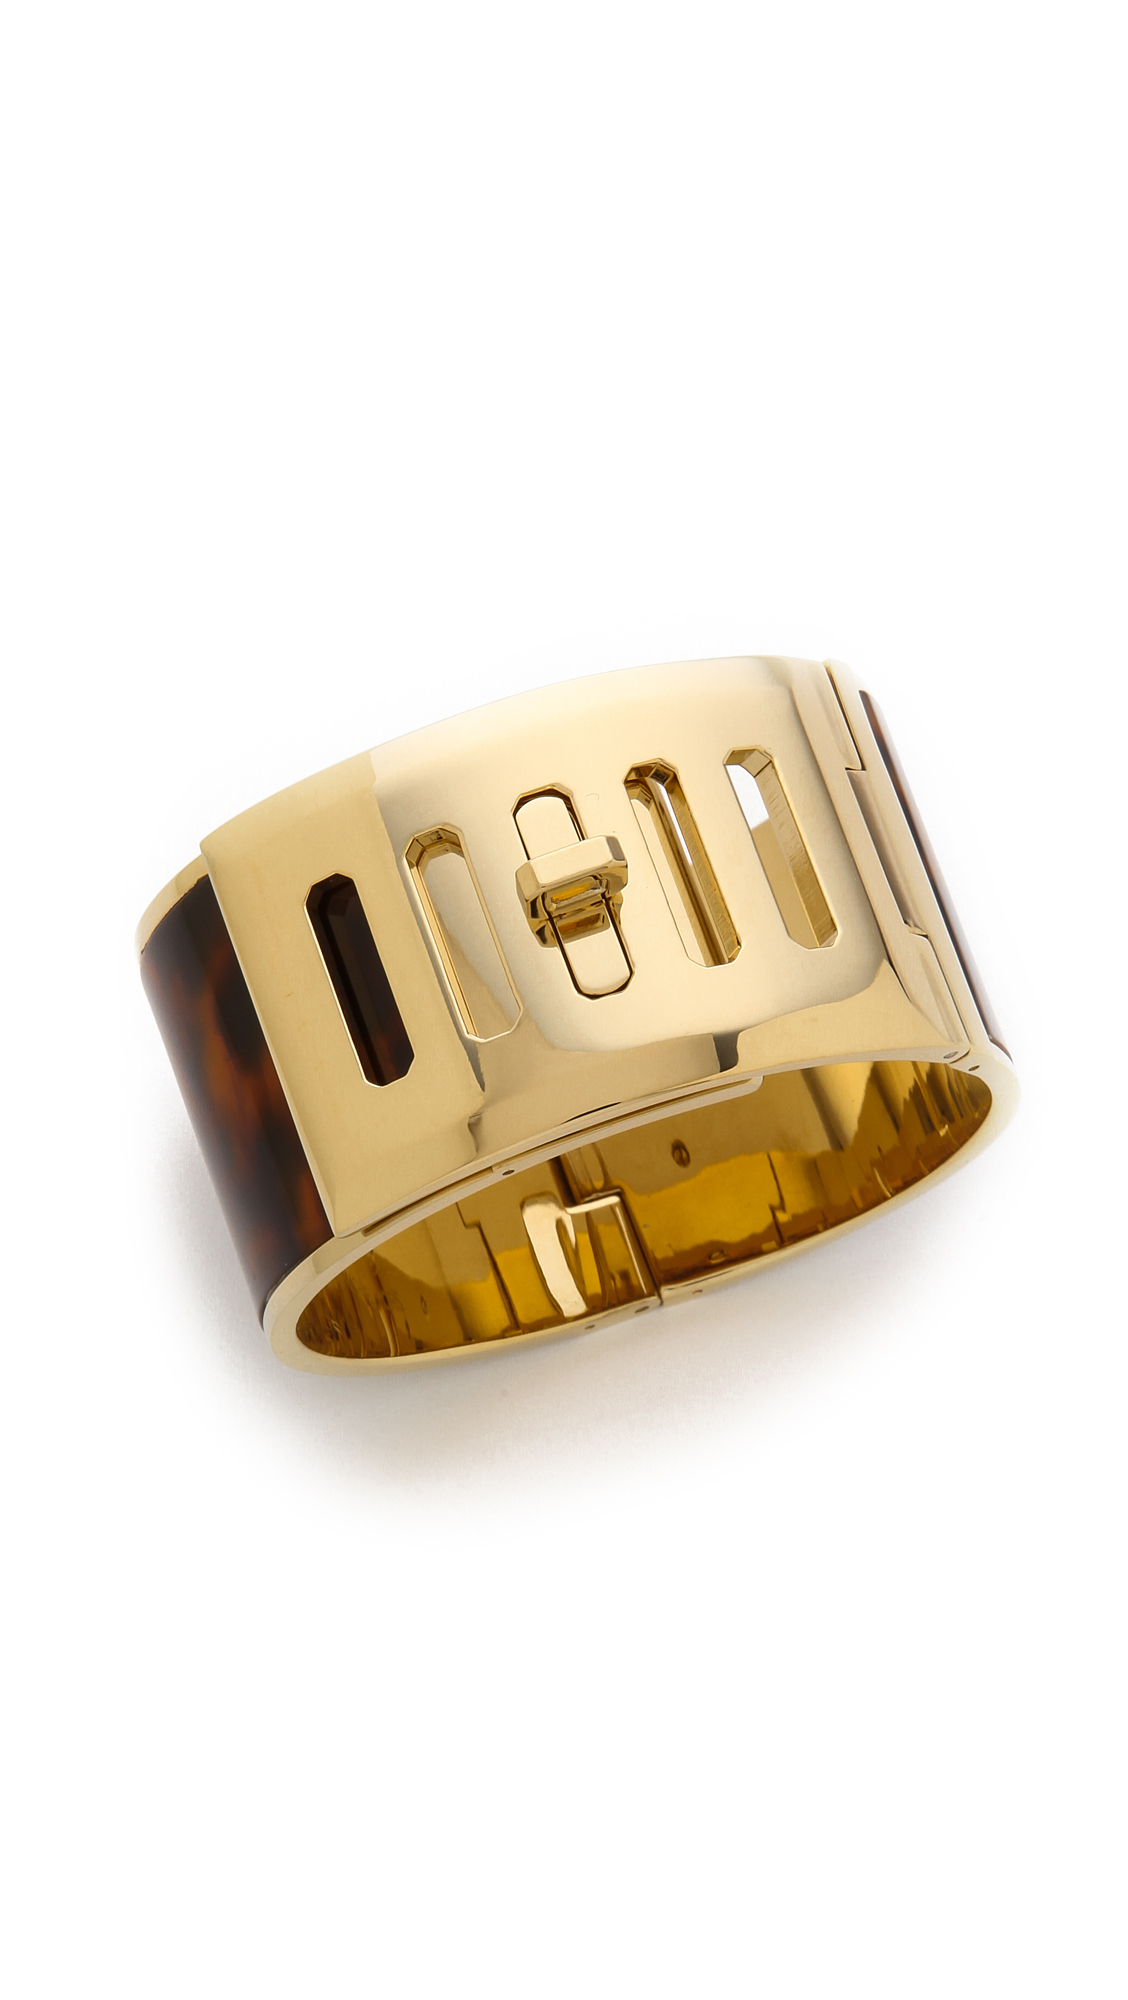 Gallery Previously Sold At Bop Women S Gold Cuff Bracelets